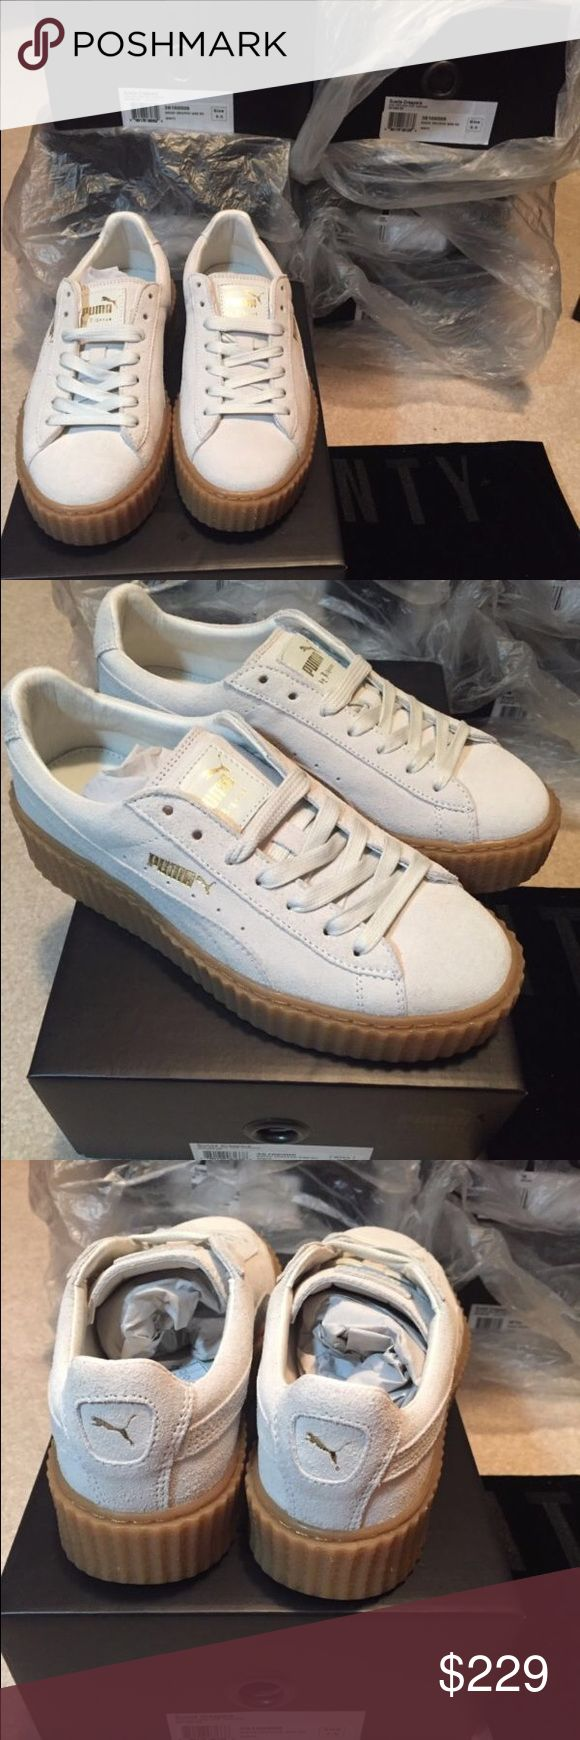 Puma Fenty Rihanna Suede Creepers WhiteOatmeal Gum Comes With Receipt These are Brand New if you want to buy please comment your number or text me @ (404) 793-8028 if you want to buy ‼️ payment is not on poshmark thanks (also price is lower ) ‼️ Puma Shoes Sneakers